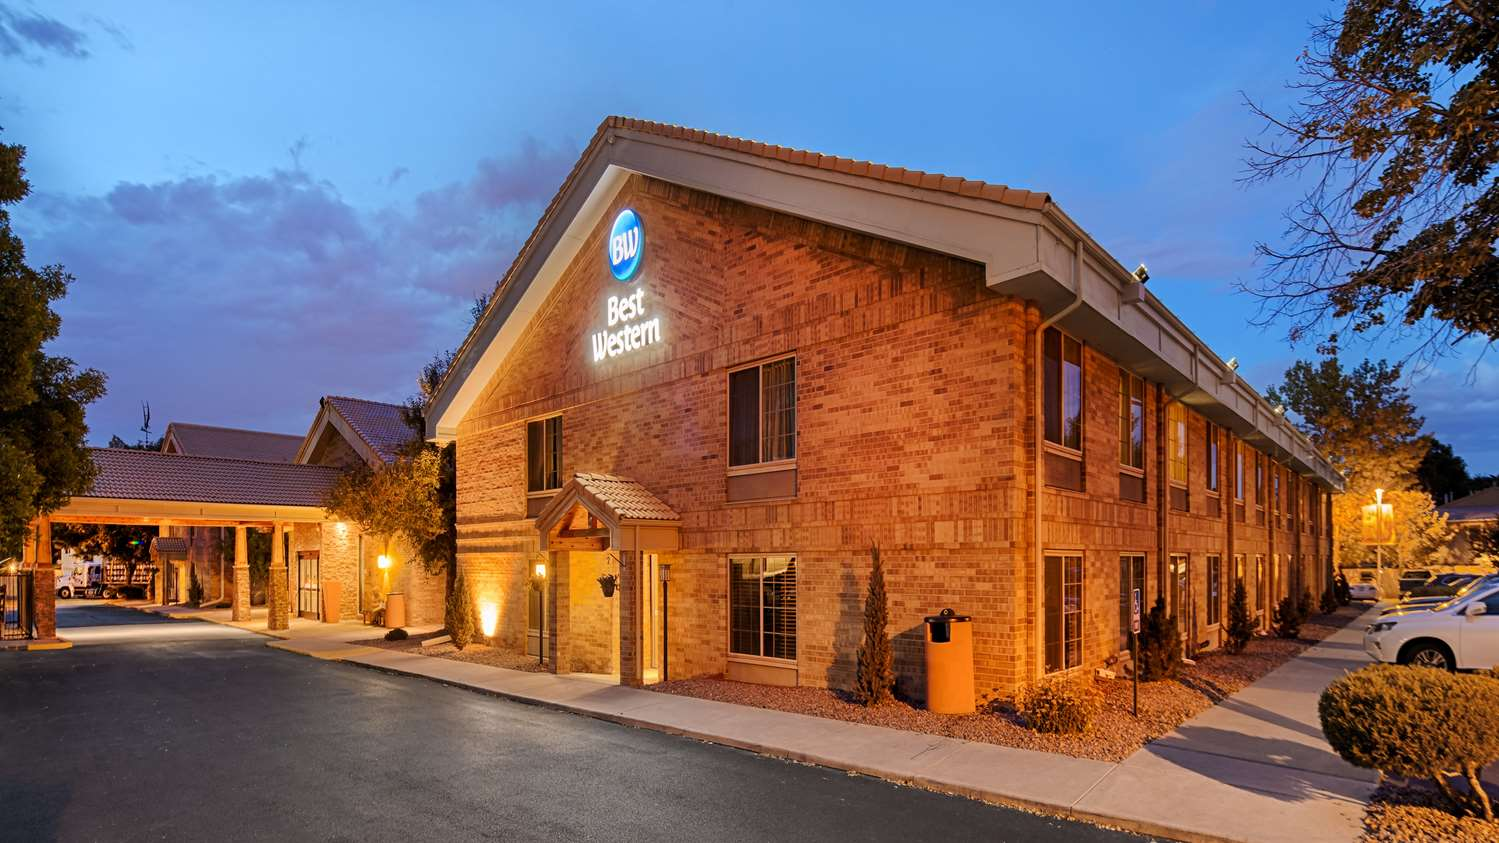 Best Western Inn Lakewood